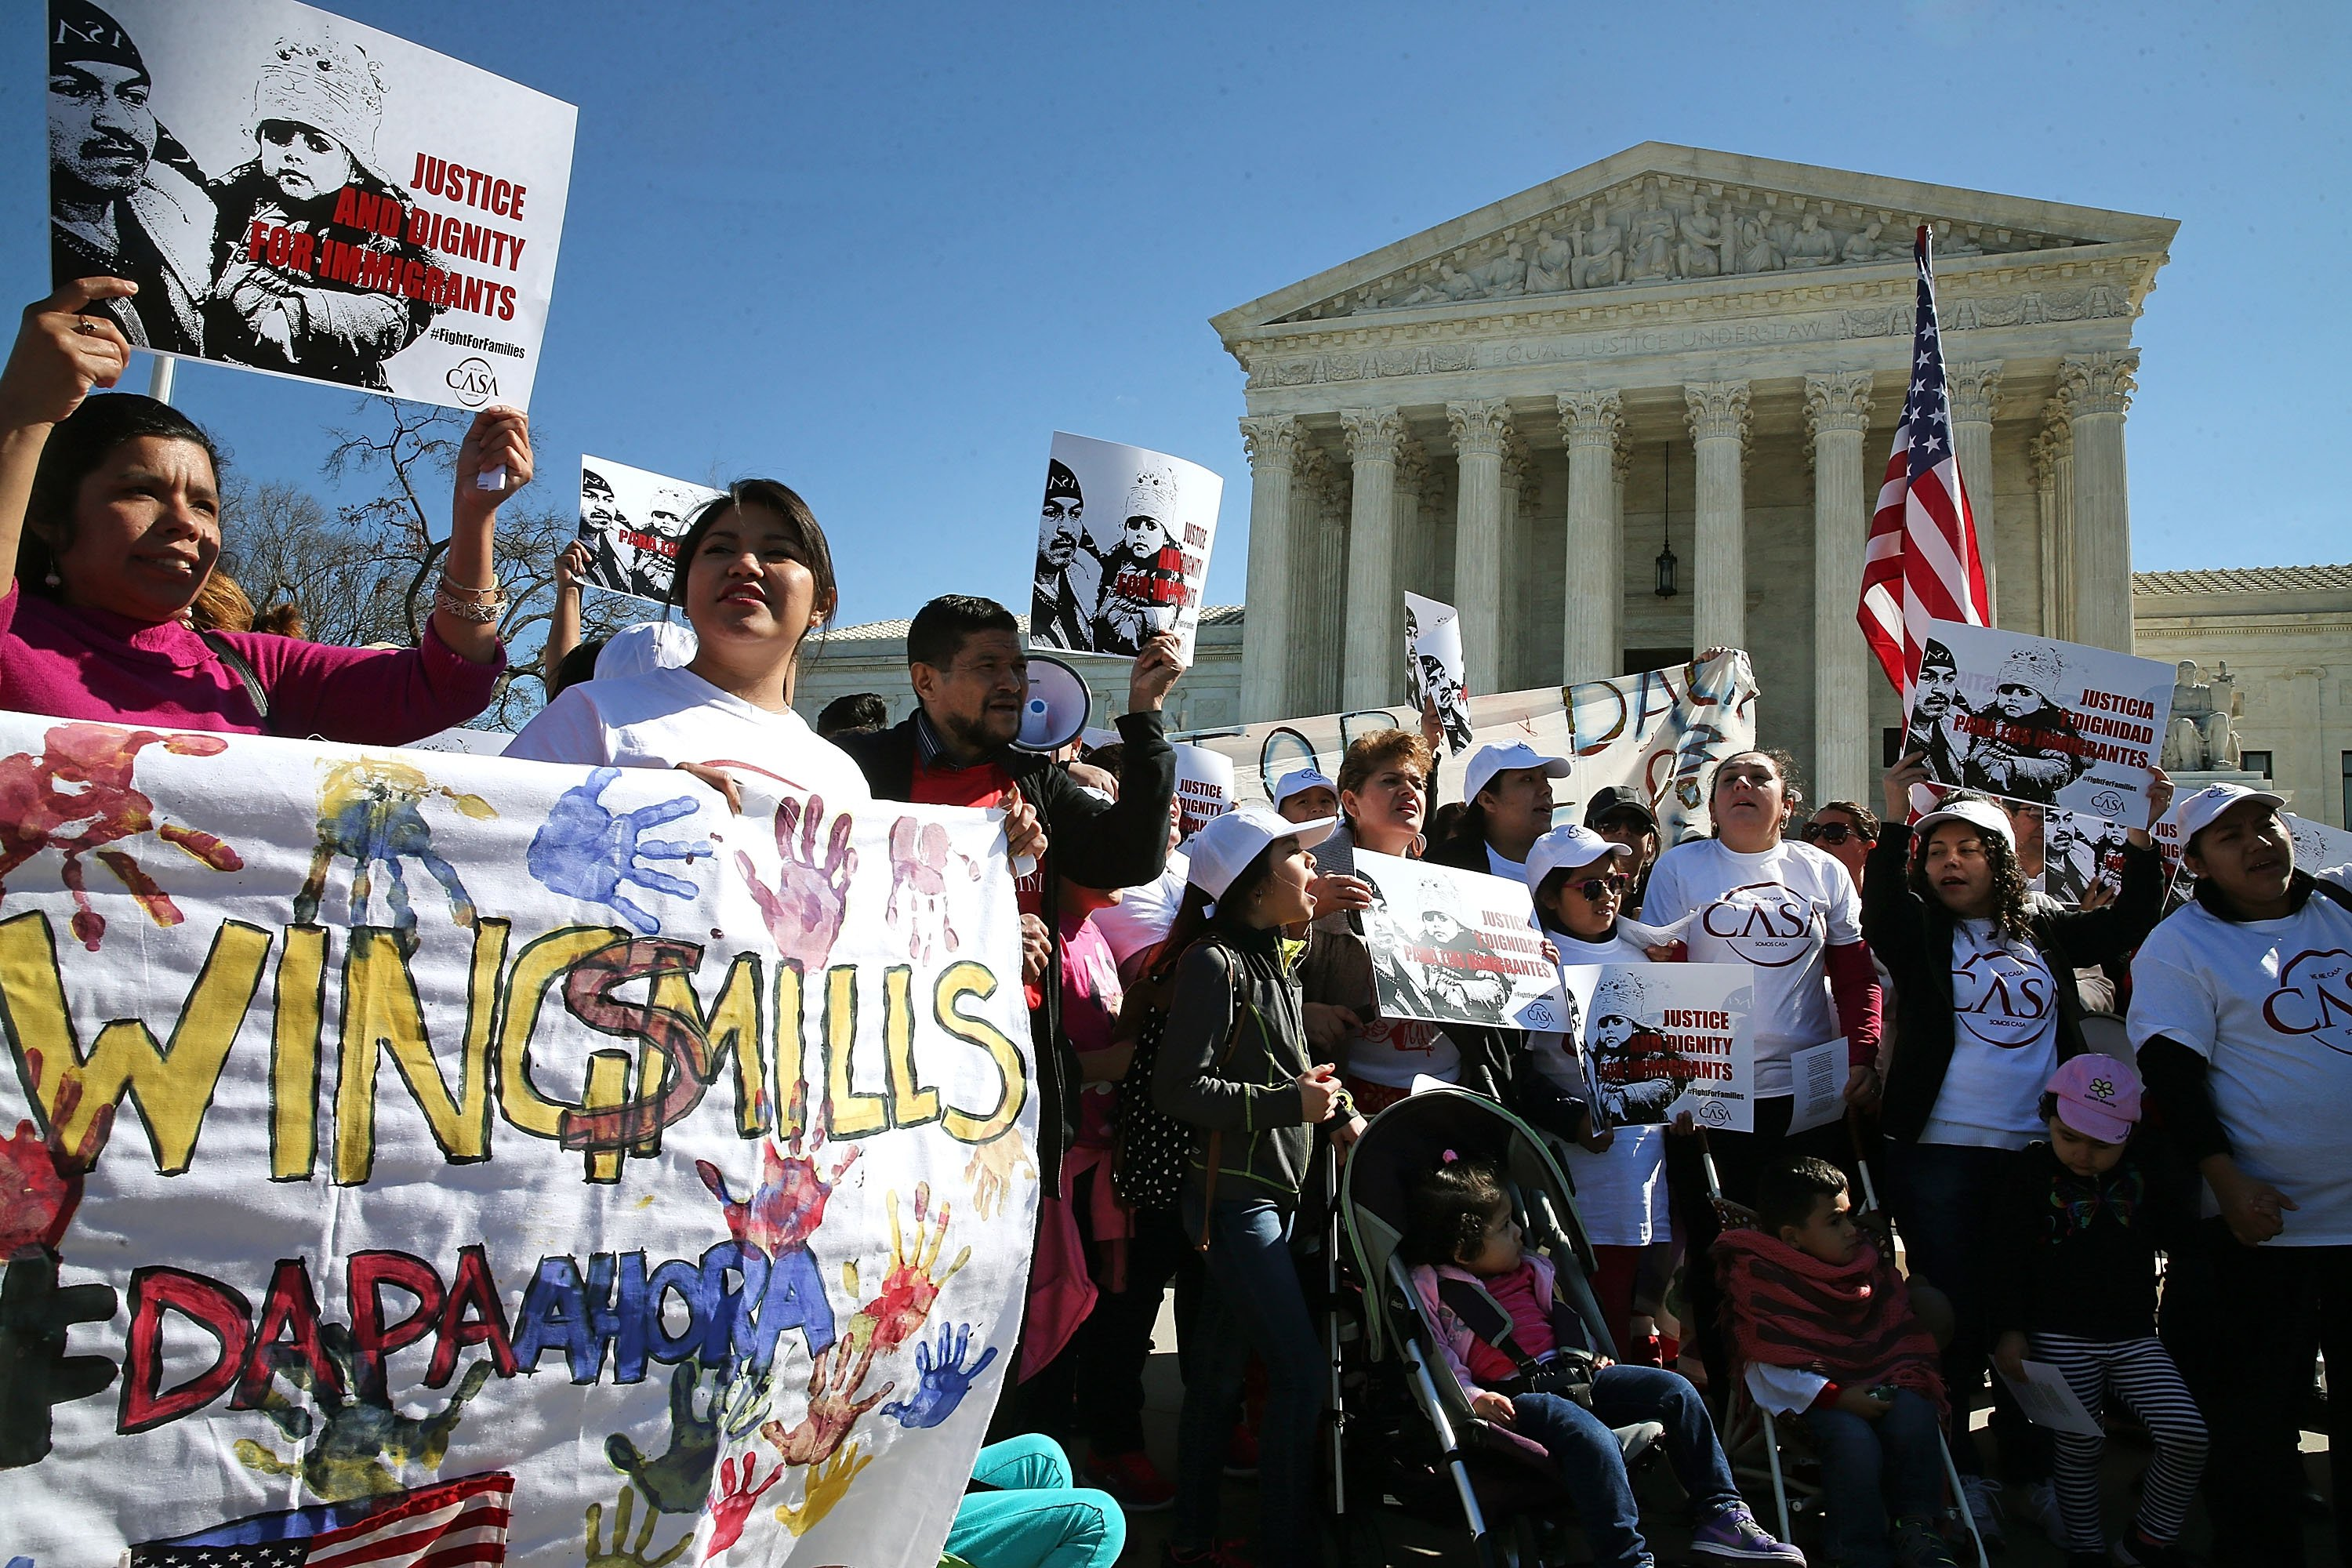 Pro-DAPA protesters rally in front of the Supreme Court on March 18, 2016. (Mark Wilson/Getty Images)